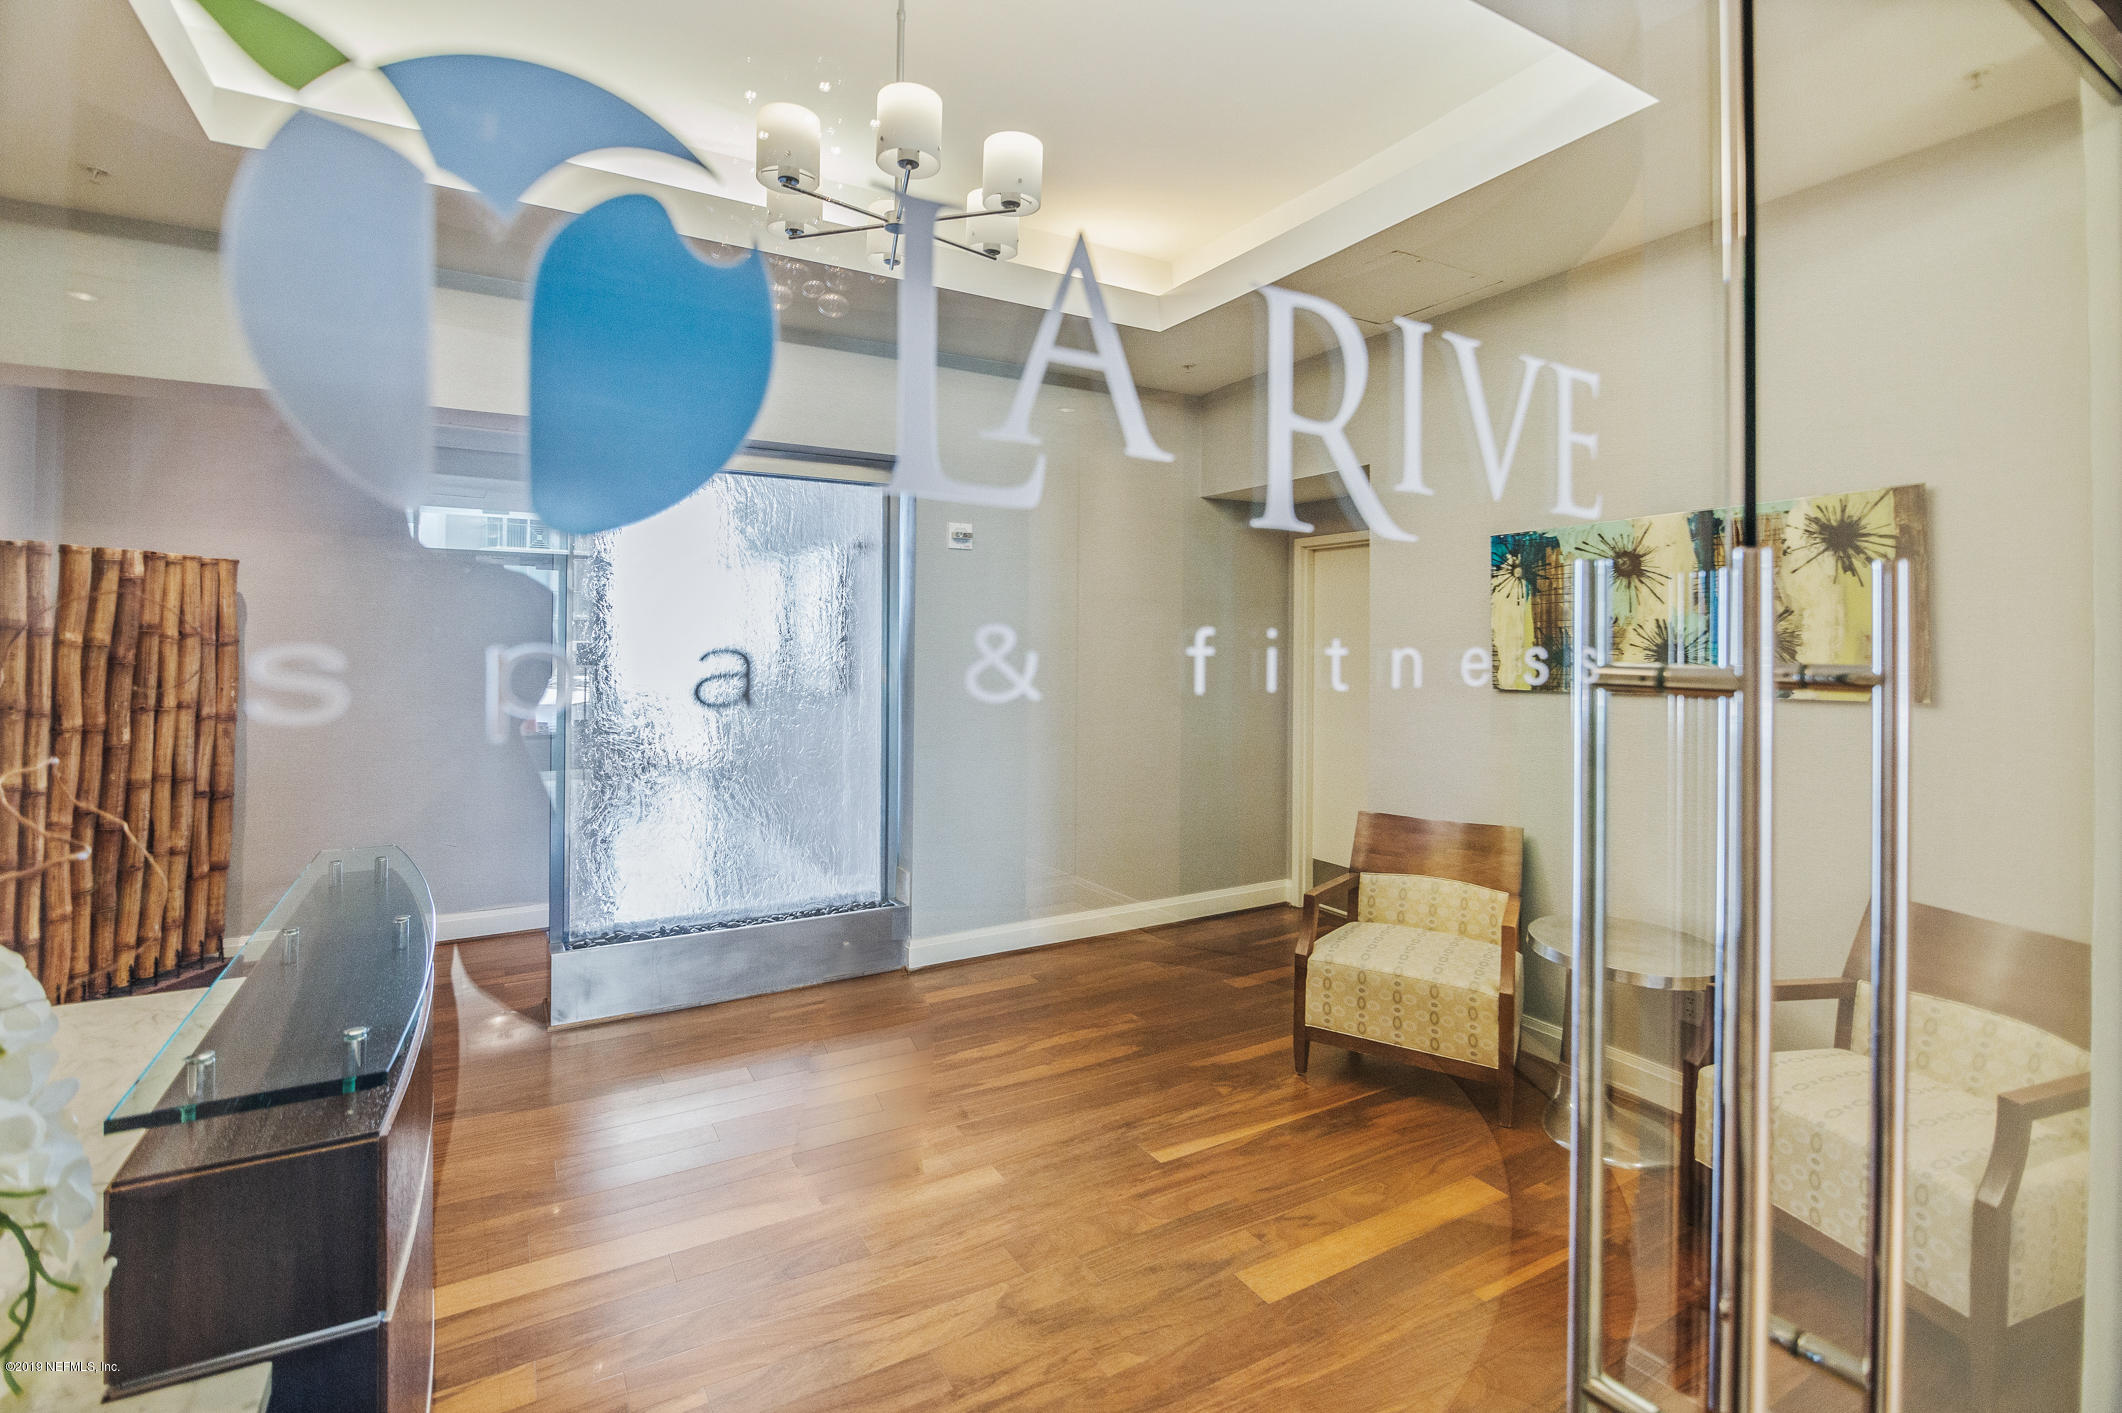 1431 RIVERPLACE, JACKSONVILLE, FLORIDA 32207, 2 Bedrooms Bedrooms, ,2 BathroomsBathrooms,Condo,For sale,RIVERPLACE,995332